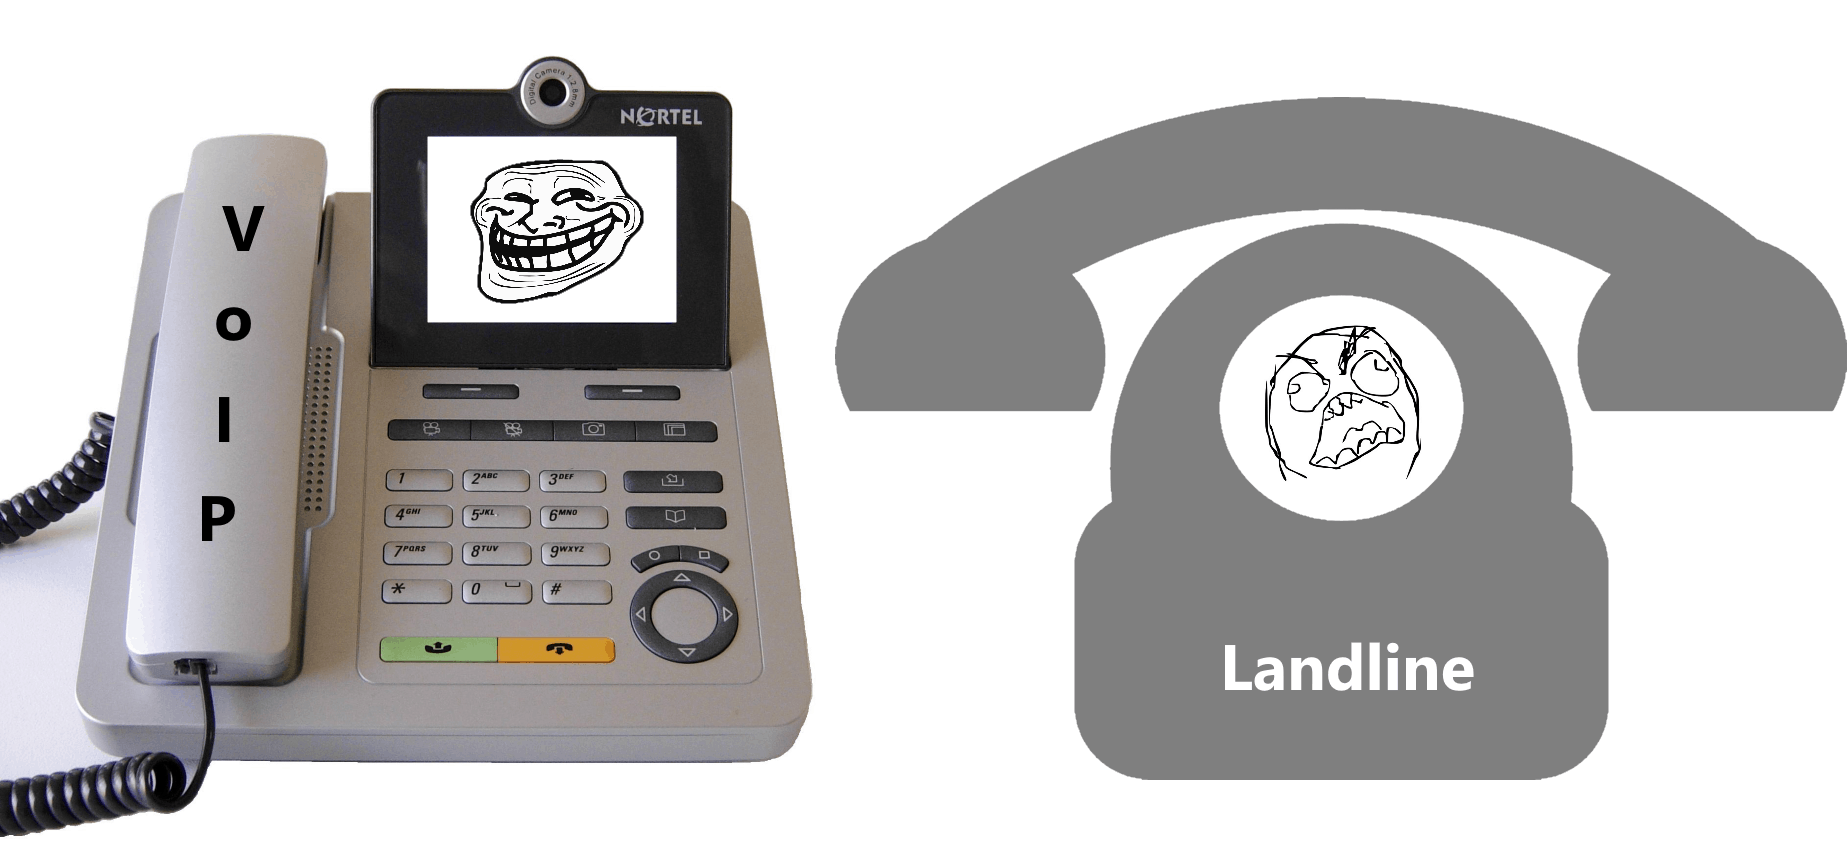 VoIP vs Landline Moving to the Clouds